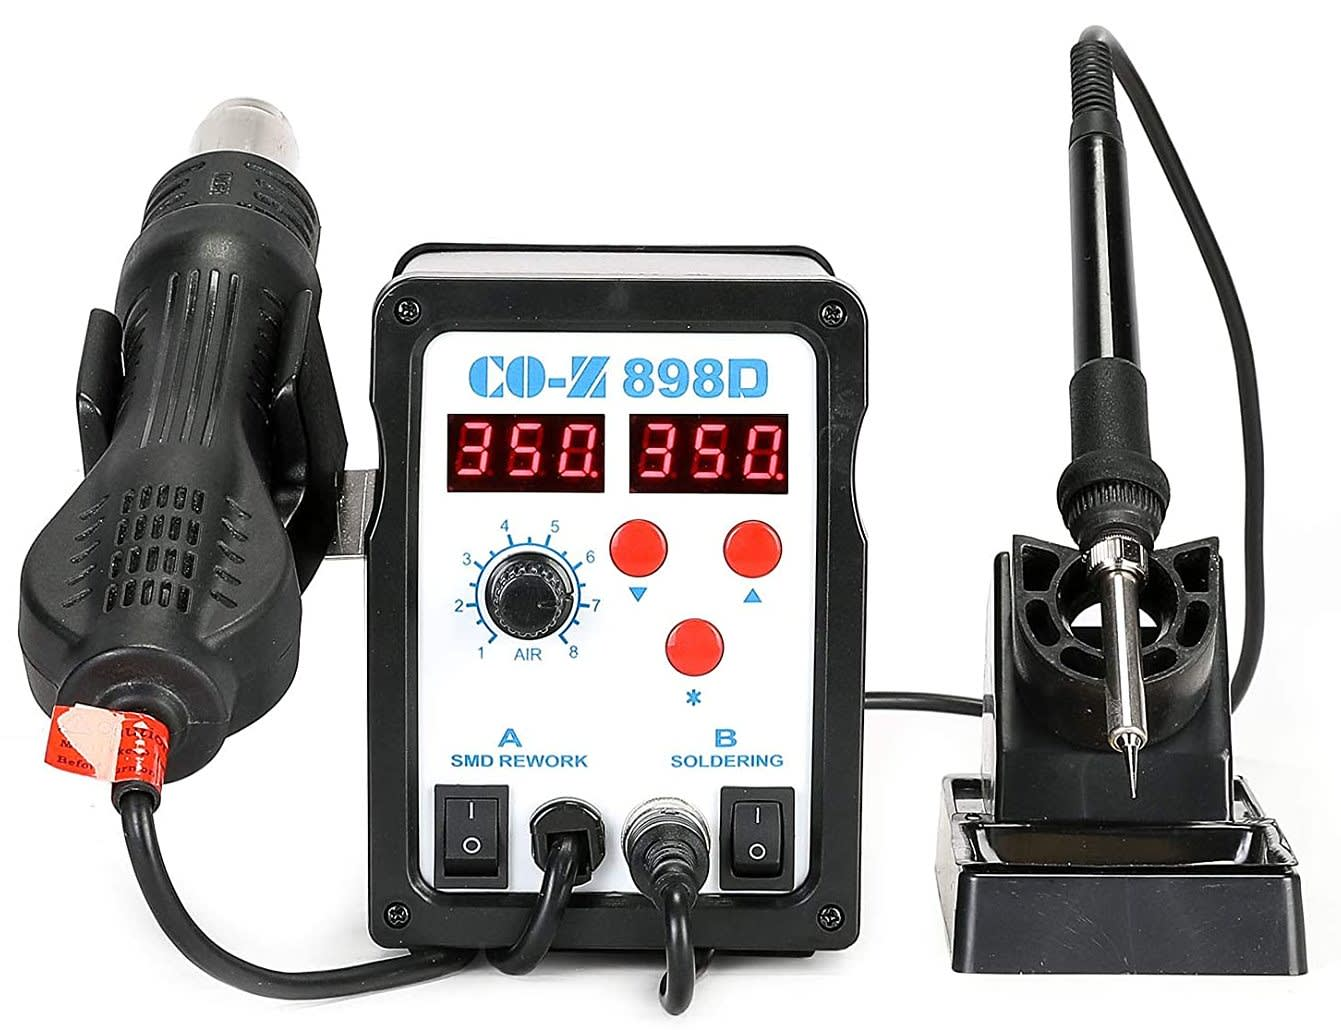 Co-Z 2-in-1 SMD Soldering and Hot Air Rework Station